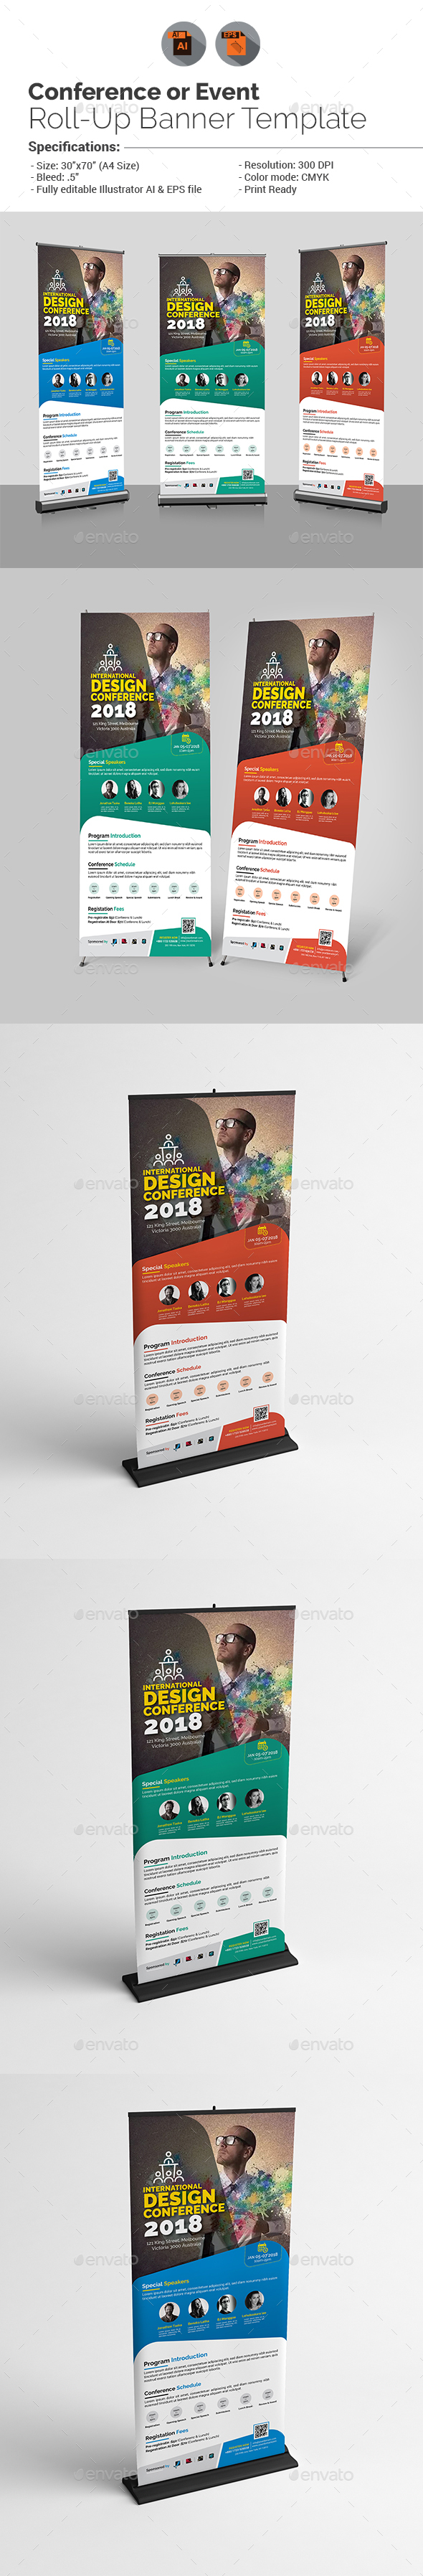 Conference or Event Roll-Up Banner Template - Signage Print Templates